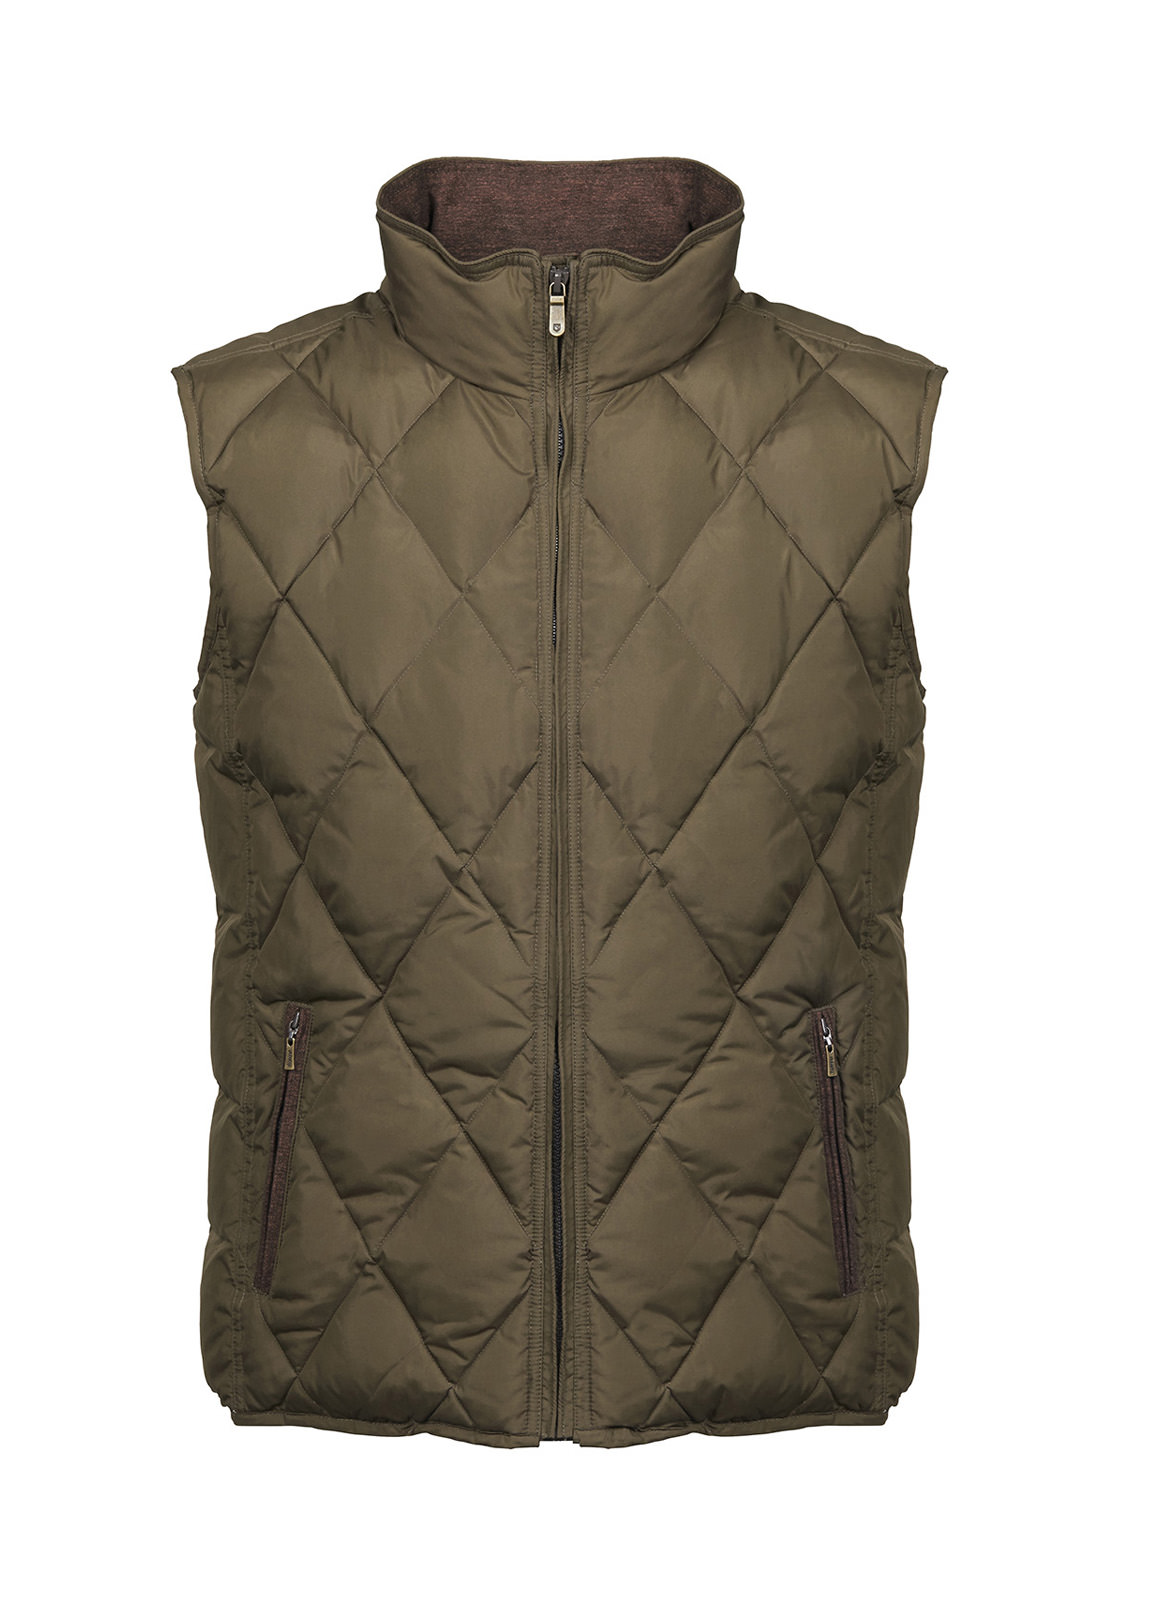 Mulranny Men's Quilted Gilet - Olive